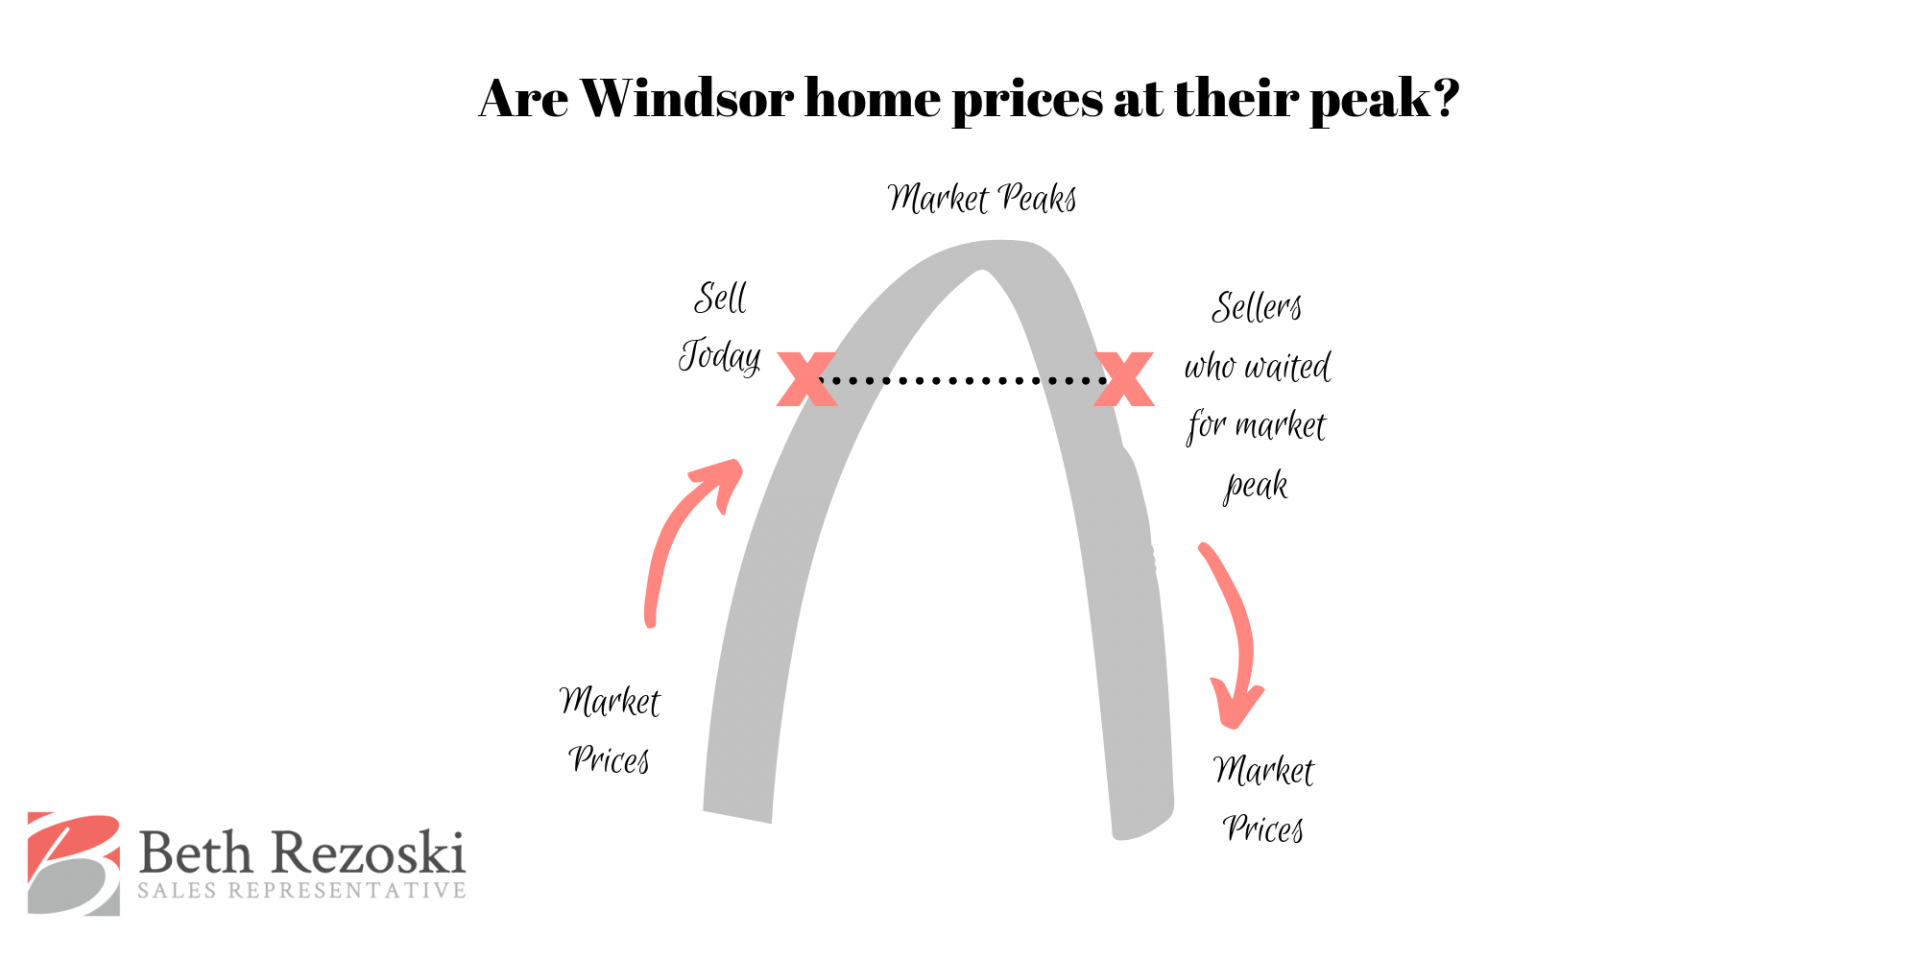 Are Windsor home prices at their peak?